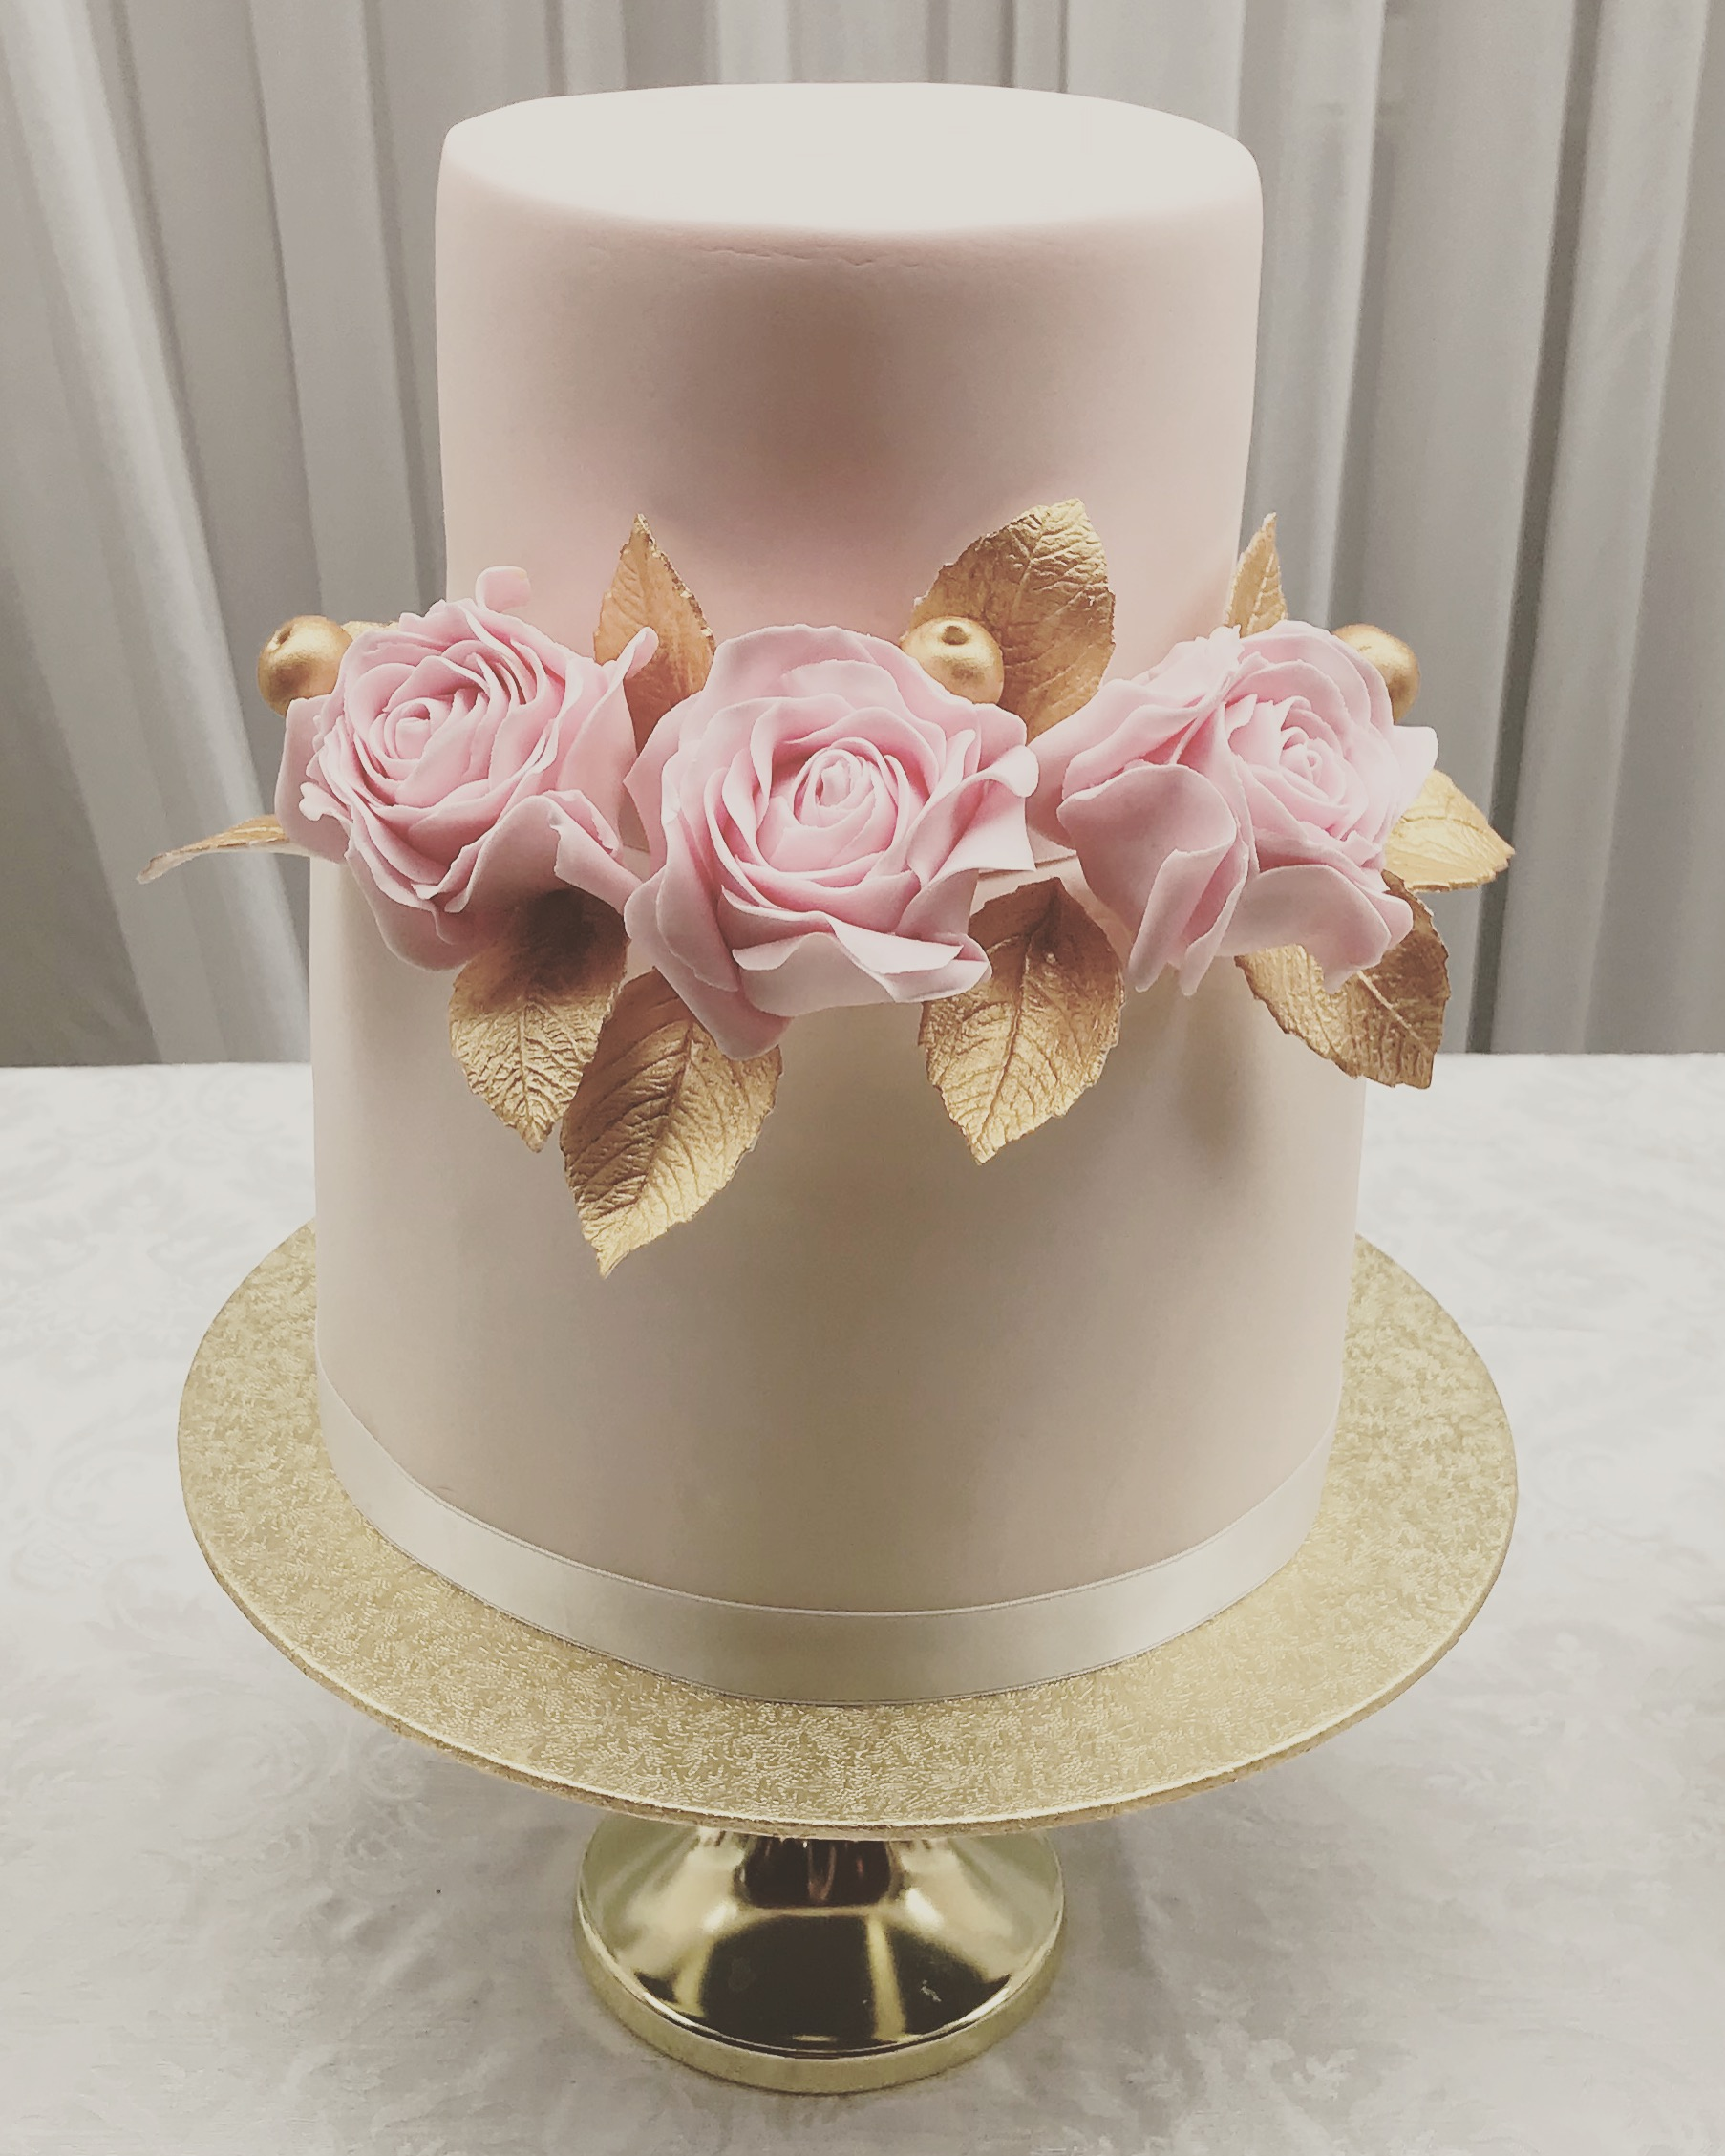 For the wedding cakes, a vintage theme provided lots of inspiration, from the classic art deco shapes to the vintage beading. I wanted a modern look so I used a lovely shade of pink pastel with touches of gold finished with some pink sugar flowers, gold leaves and berries.